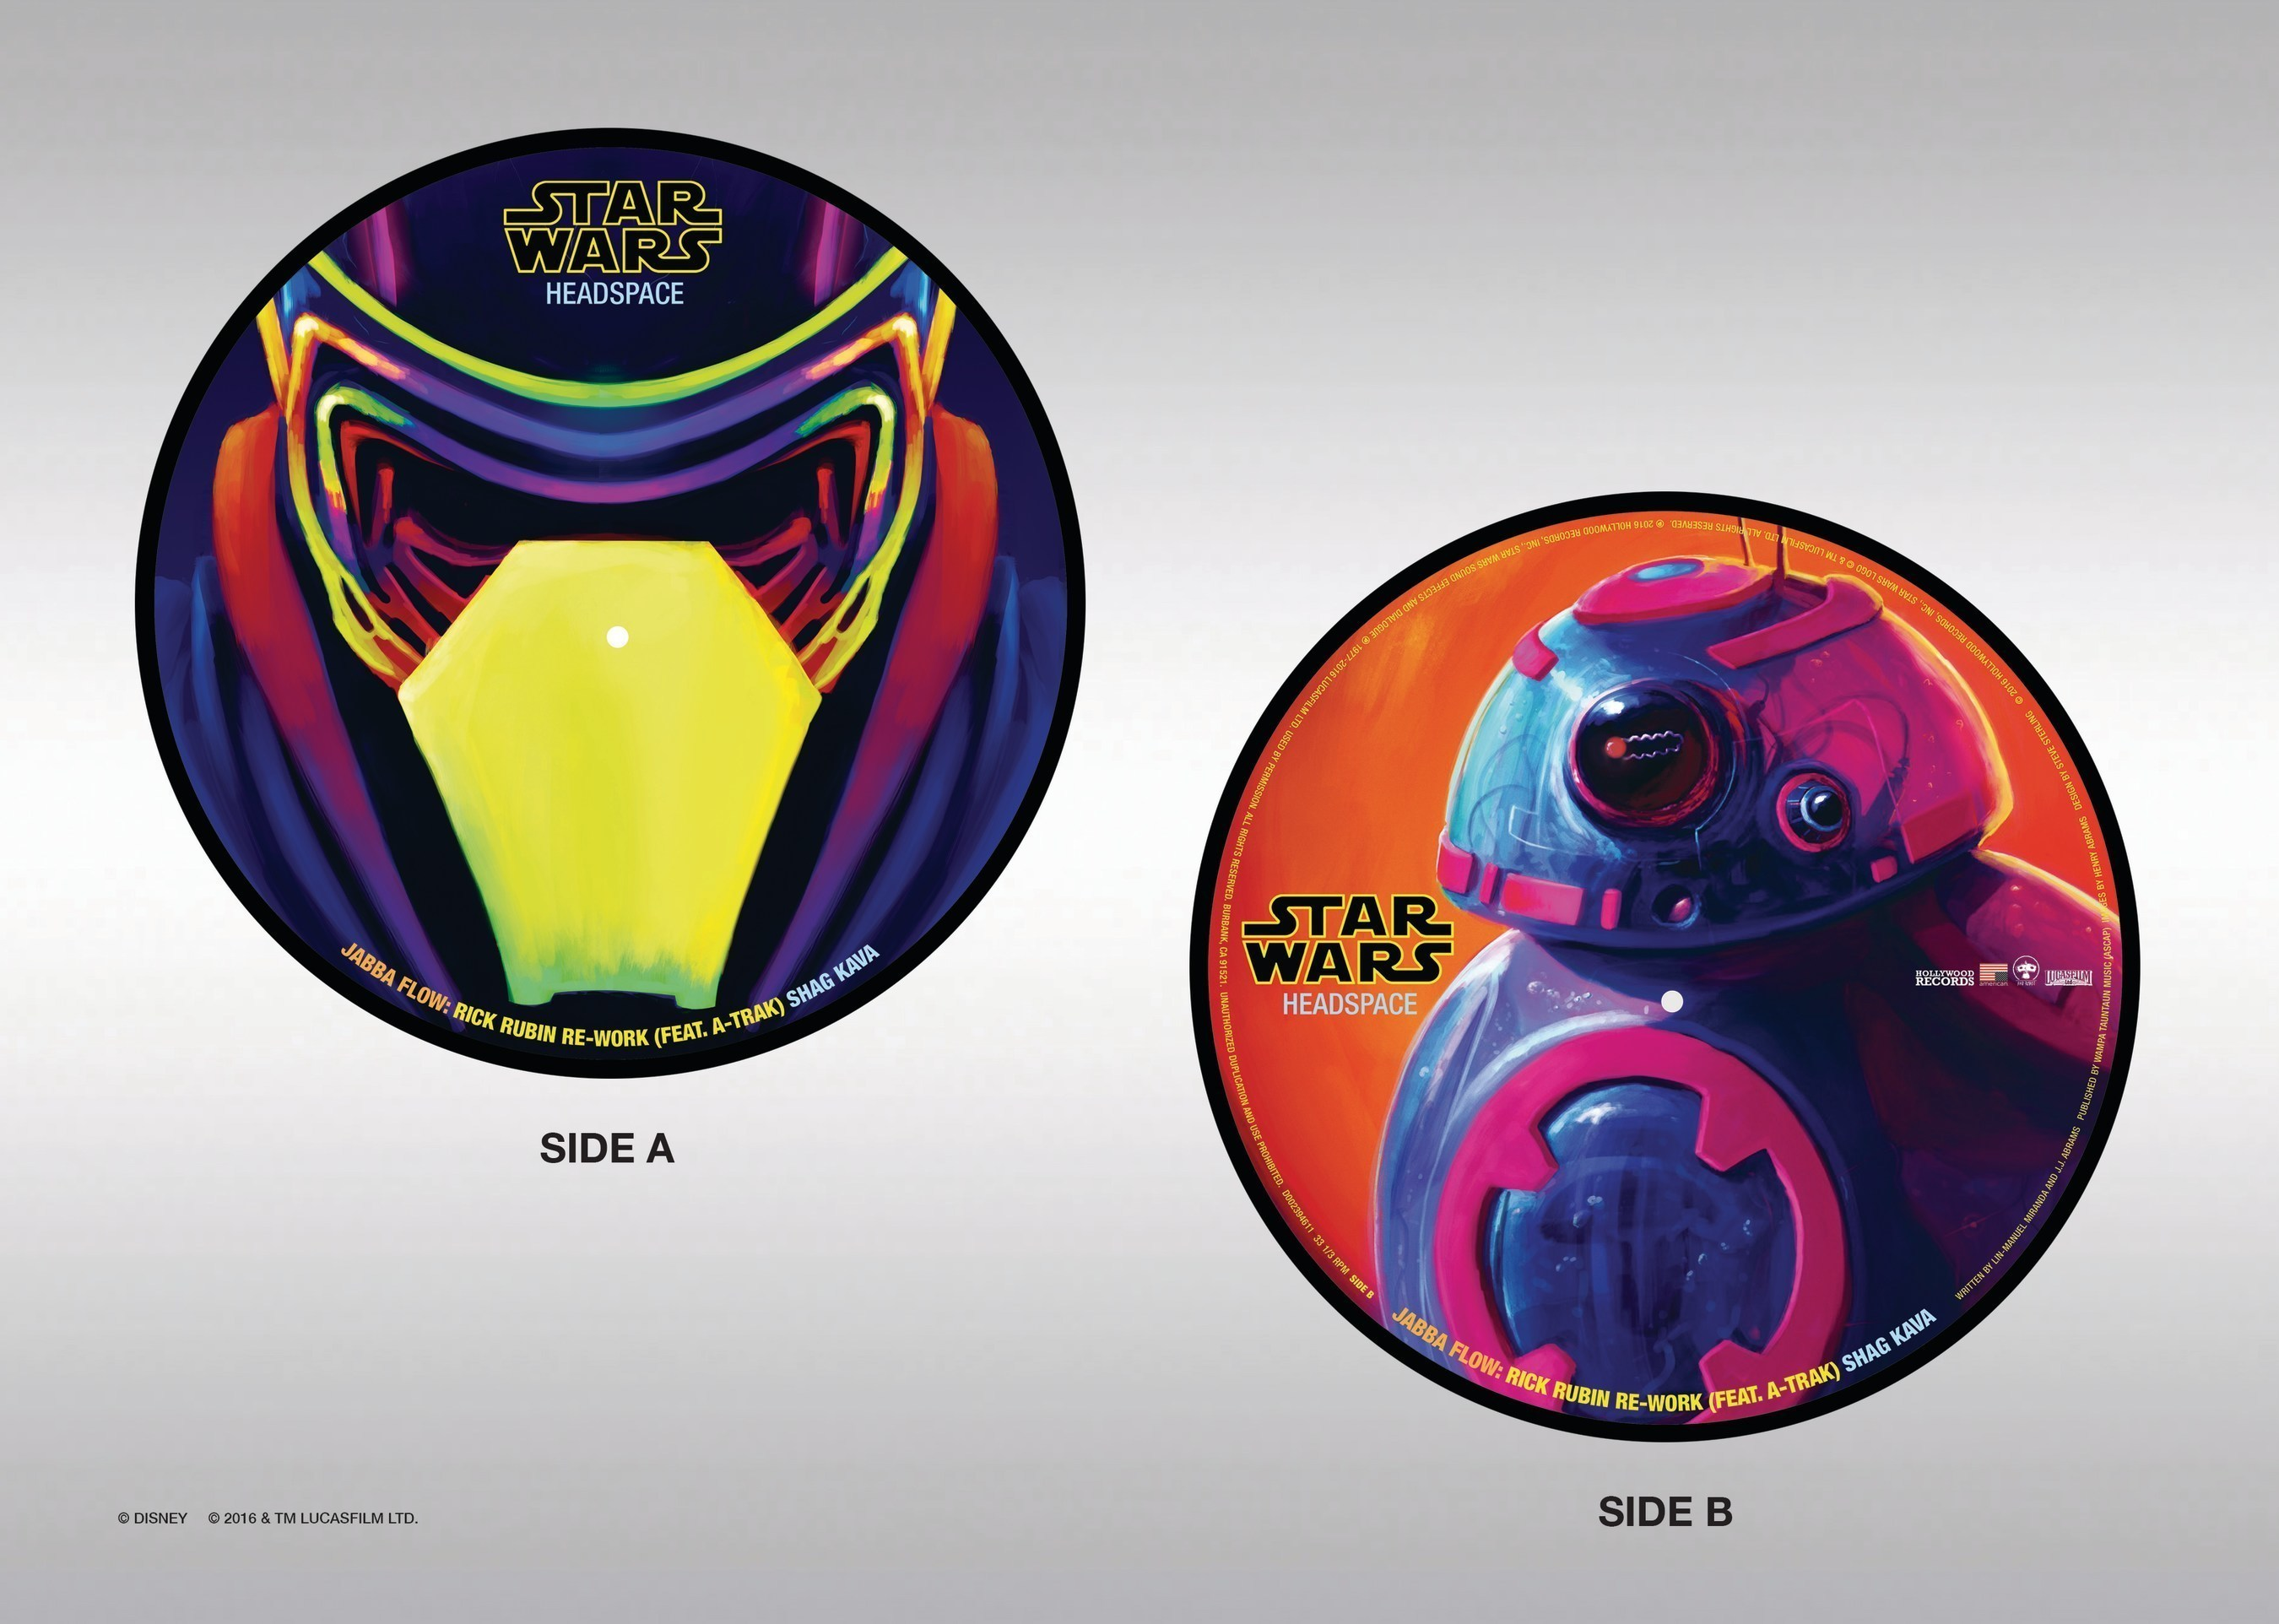 """New 10"""" Vinyl Single From Star Wars Headspace"""